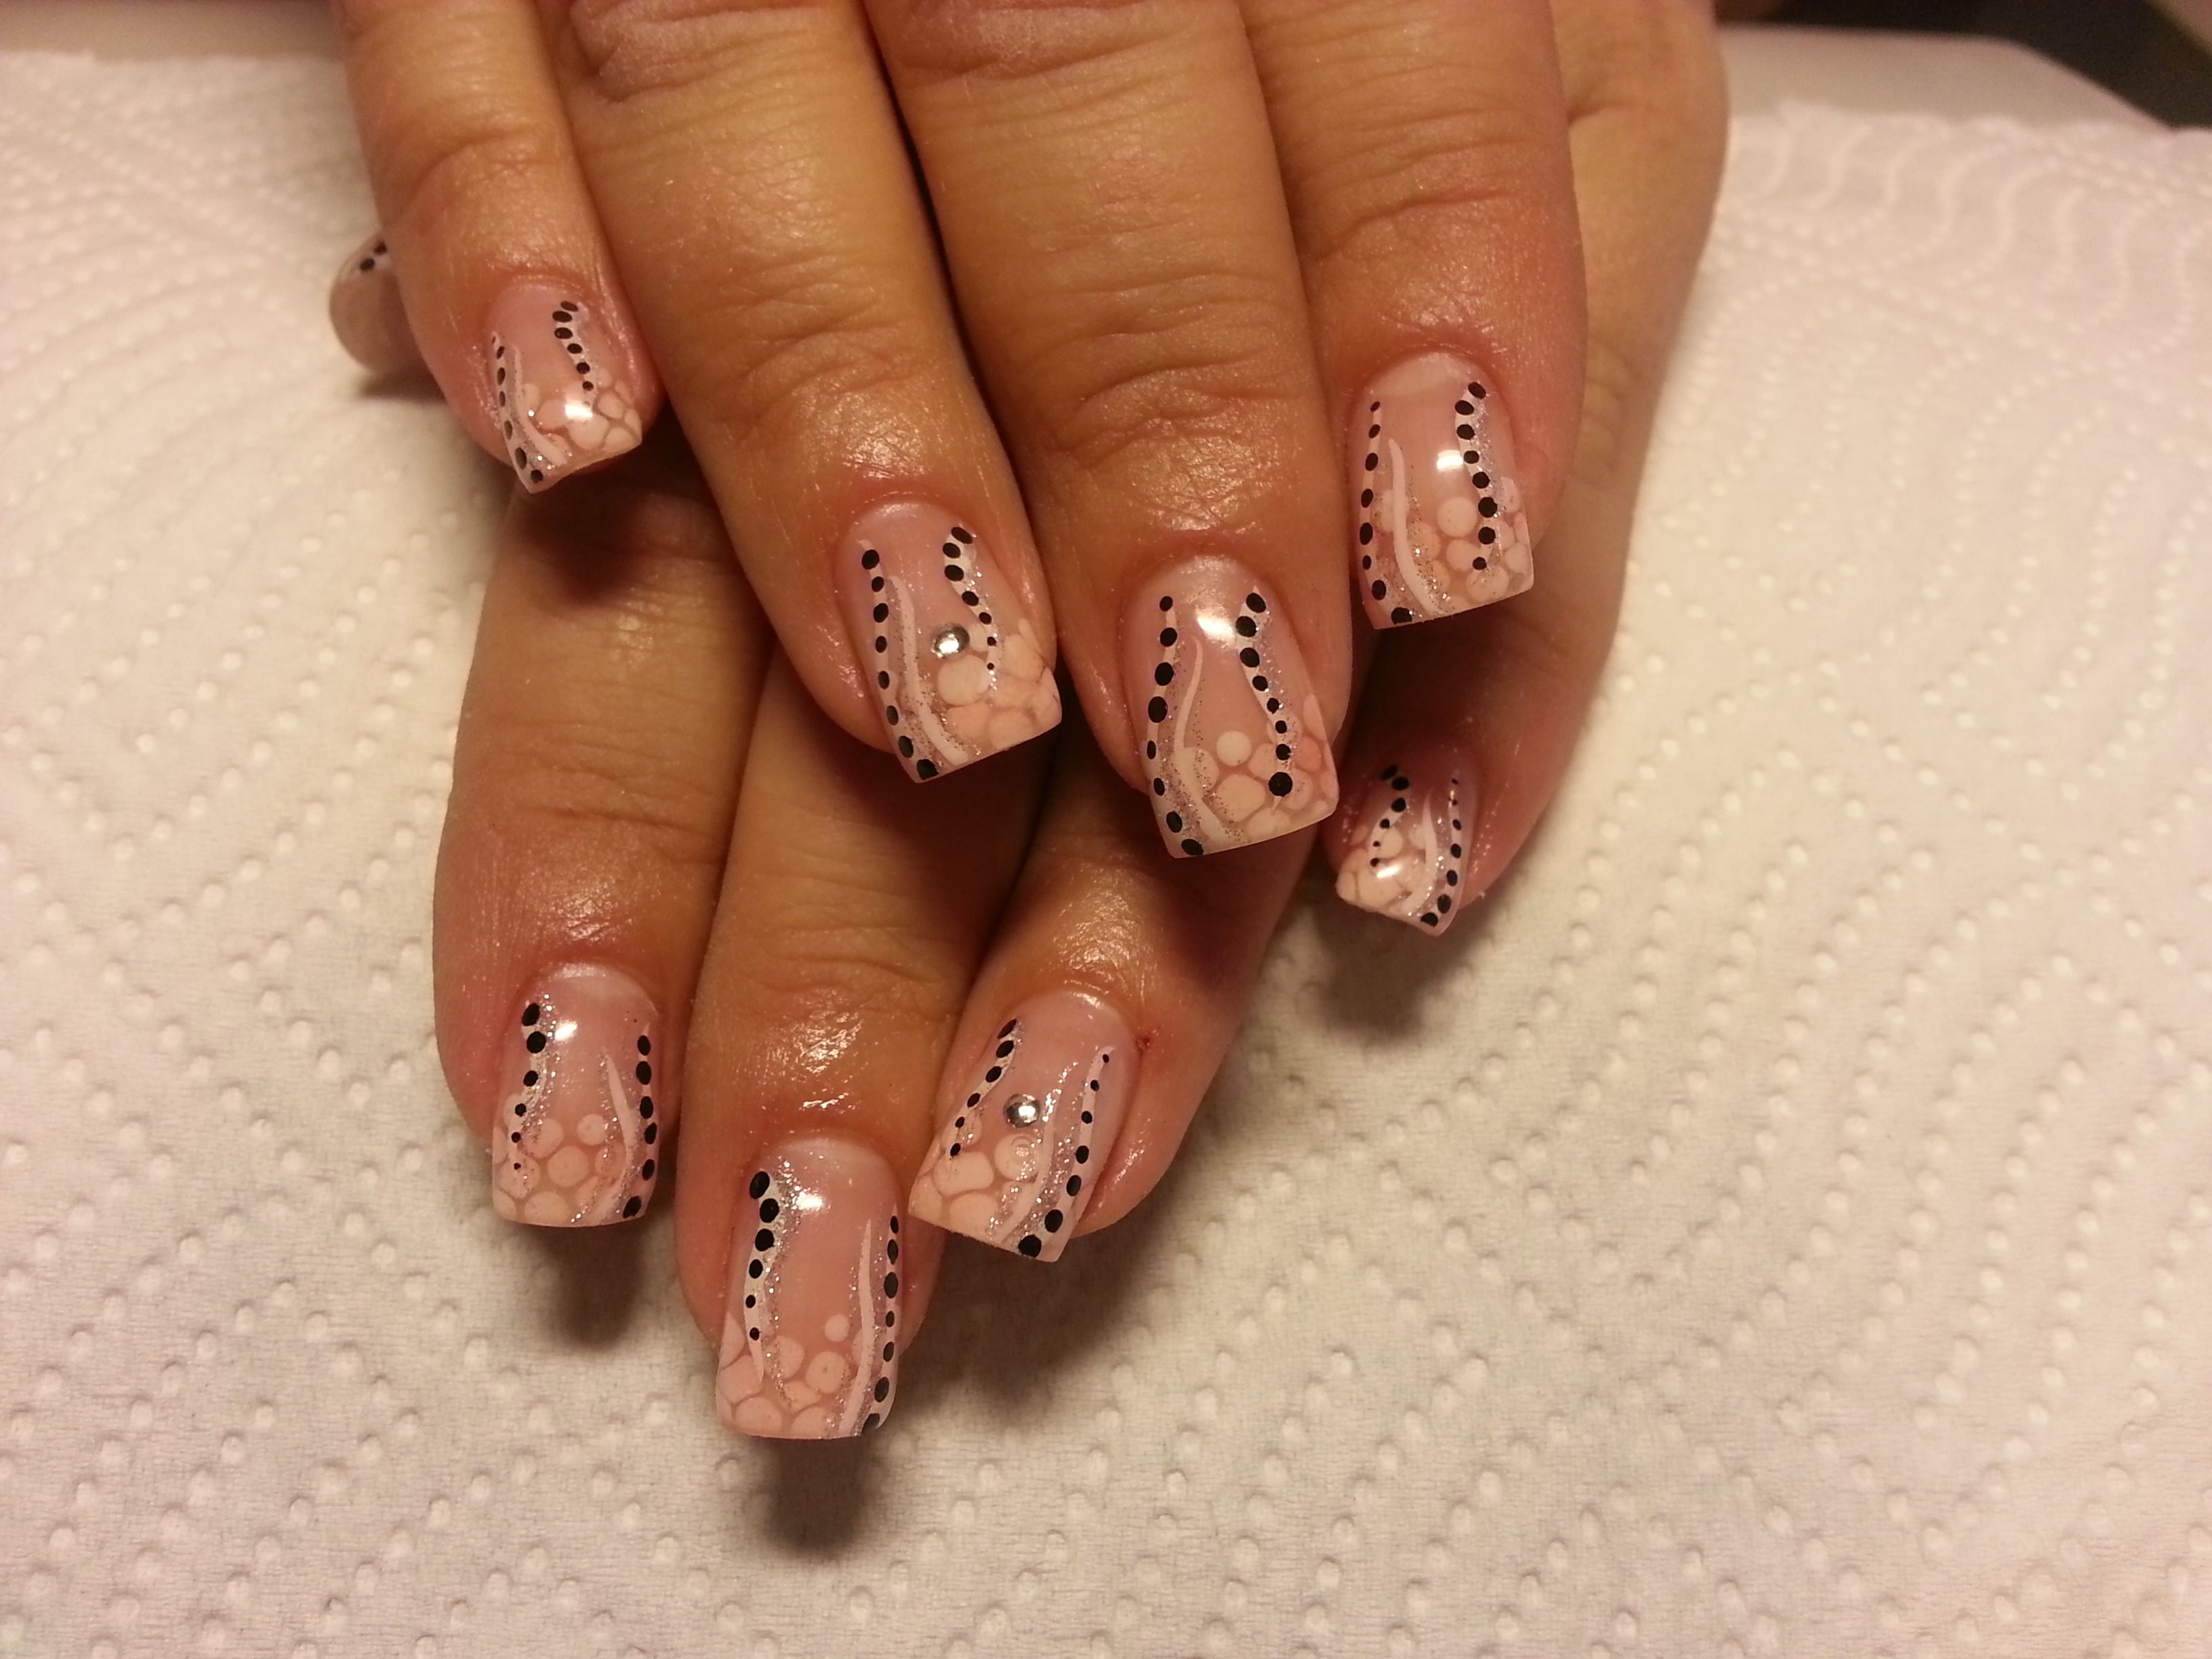 Nails by Tina from www.nageldesign-galerie.de   Nail Art Community ...